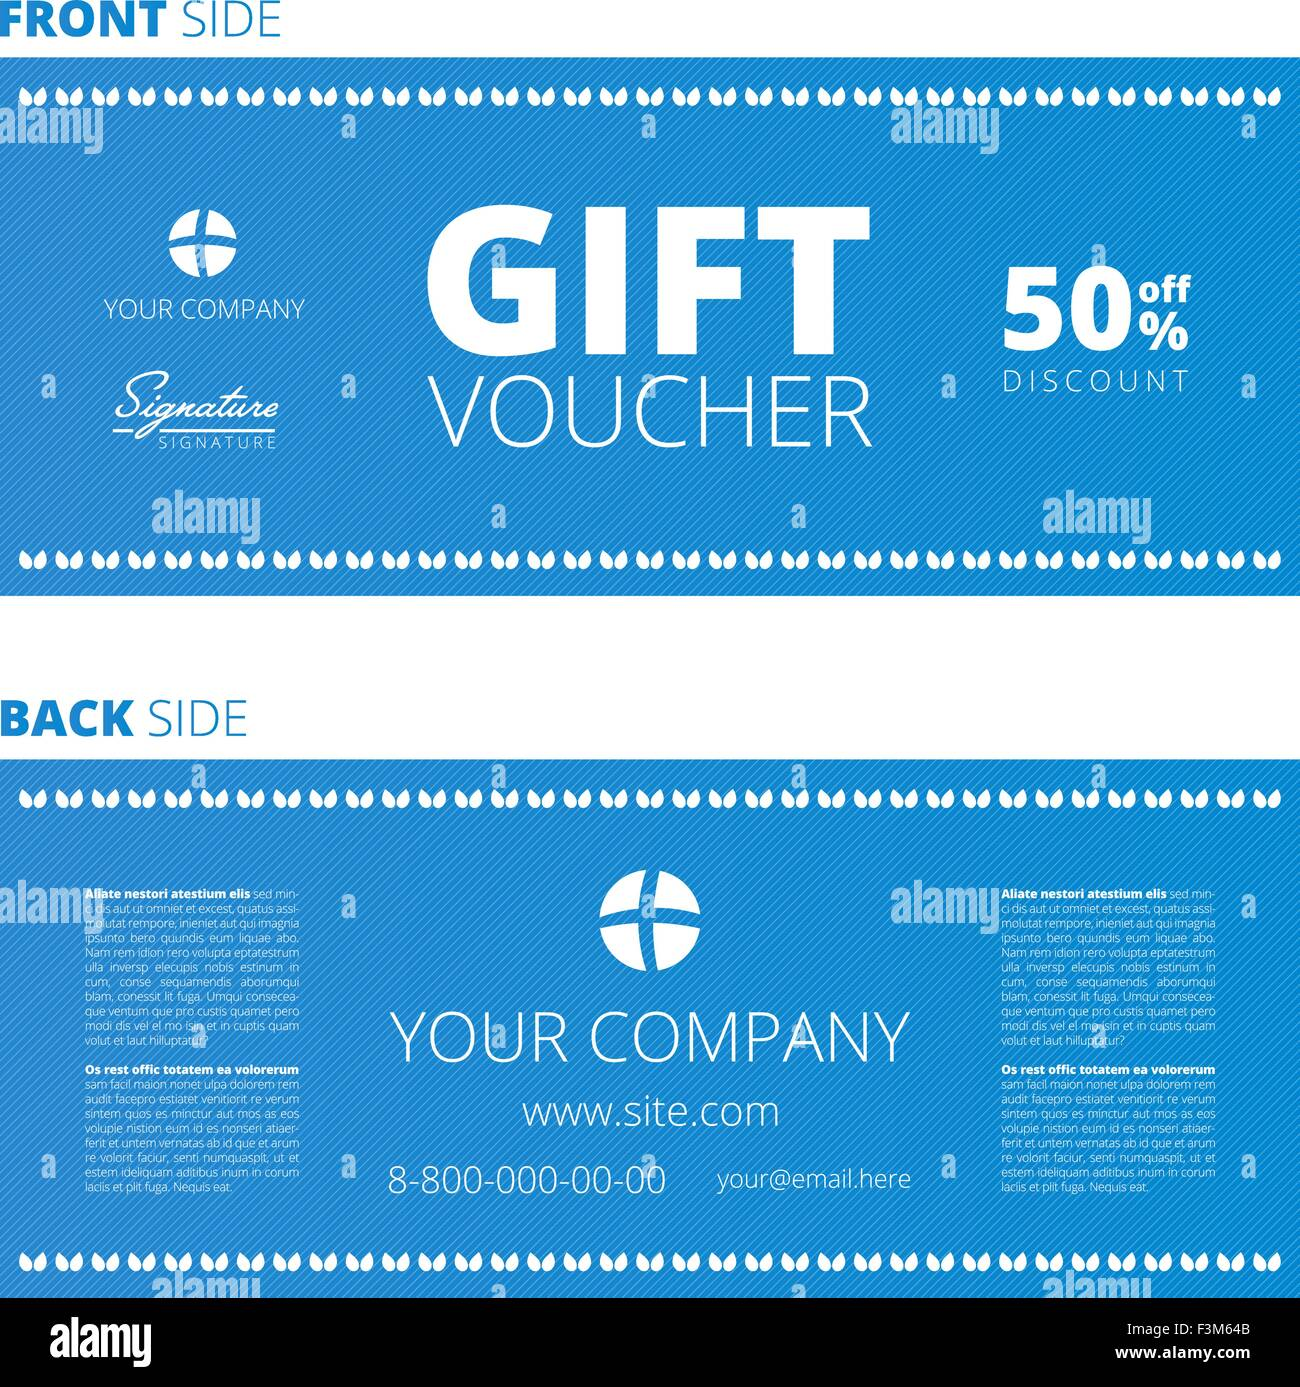 Design of voucher and gift certificate coupon template design stock design of voucher and gift certificate coupon template design discount yadclub Gallery